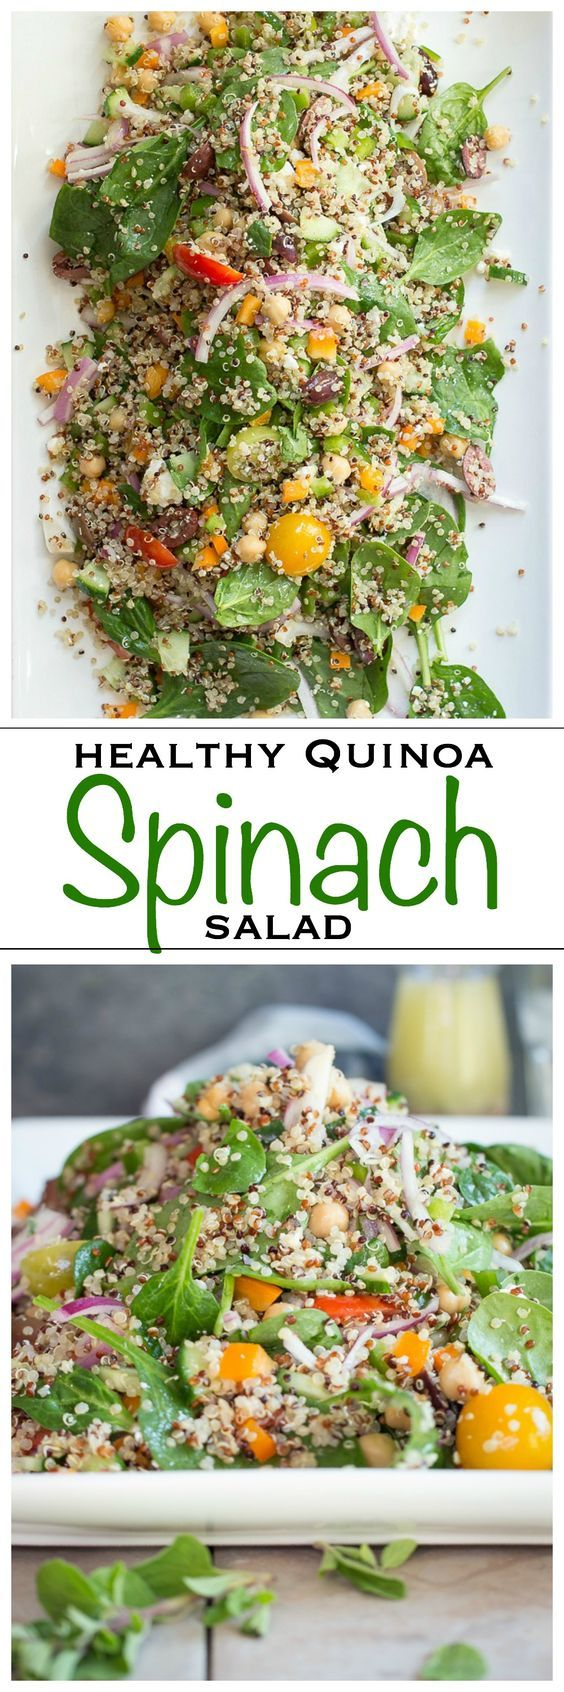 Healthy Quinoa and Spinach Salad tossed in a red wine garlic vinaigrette | Foodness Gracious